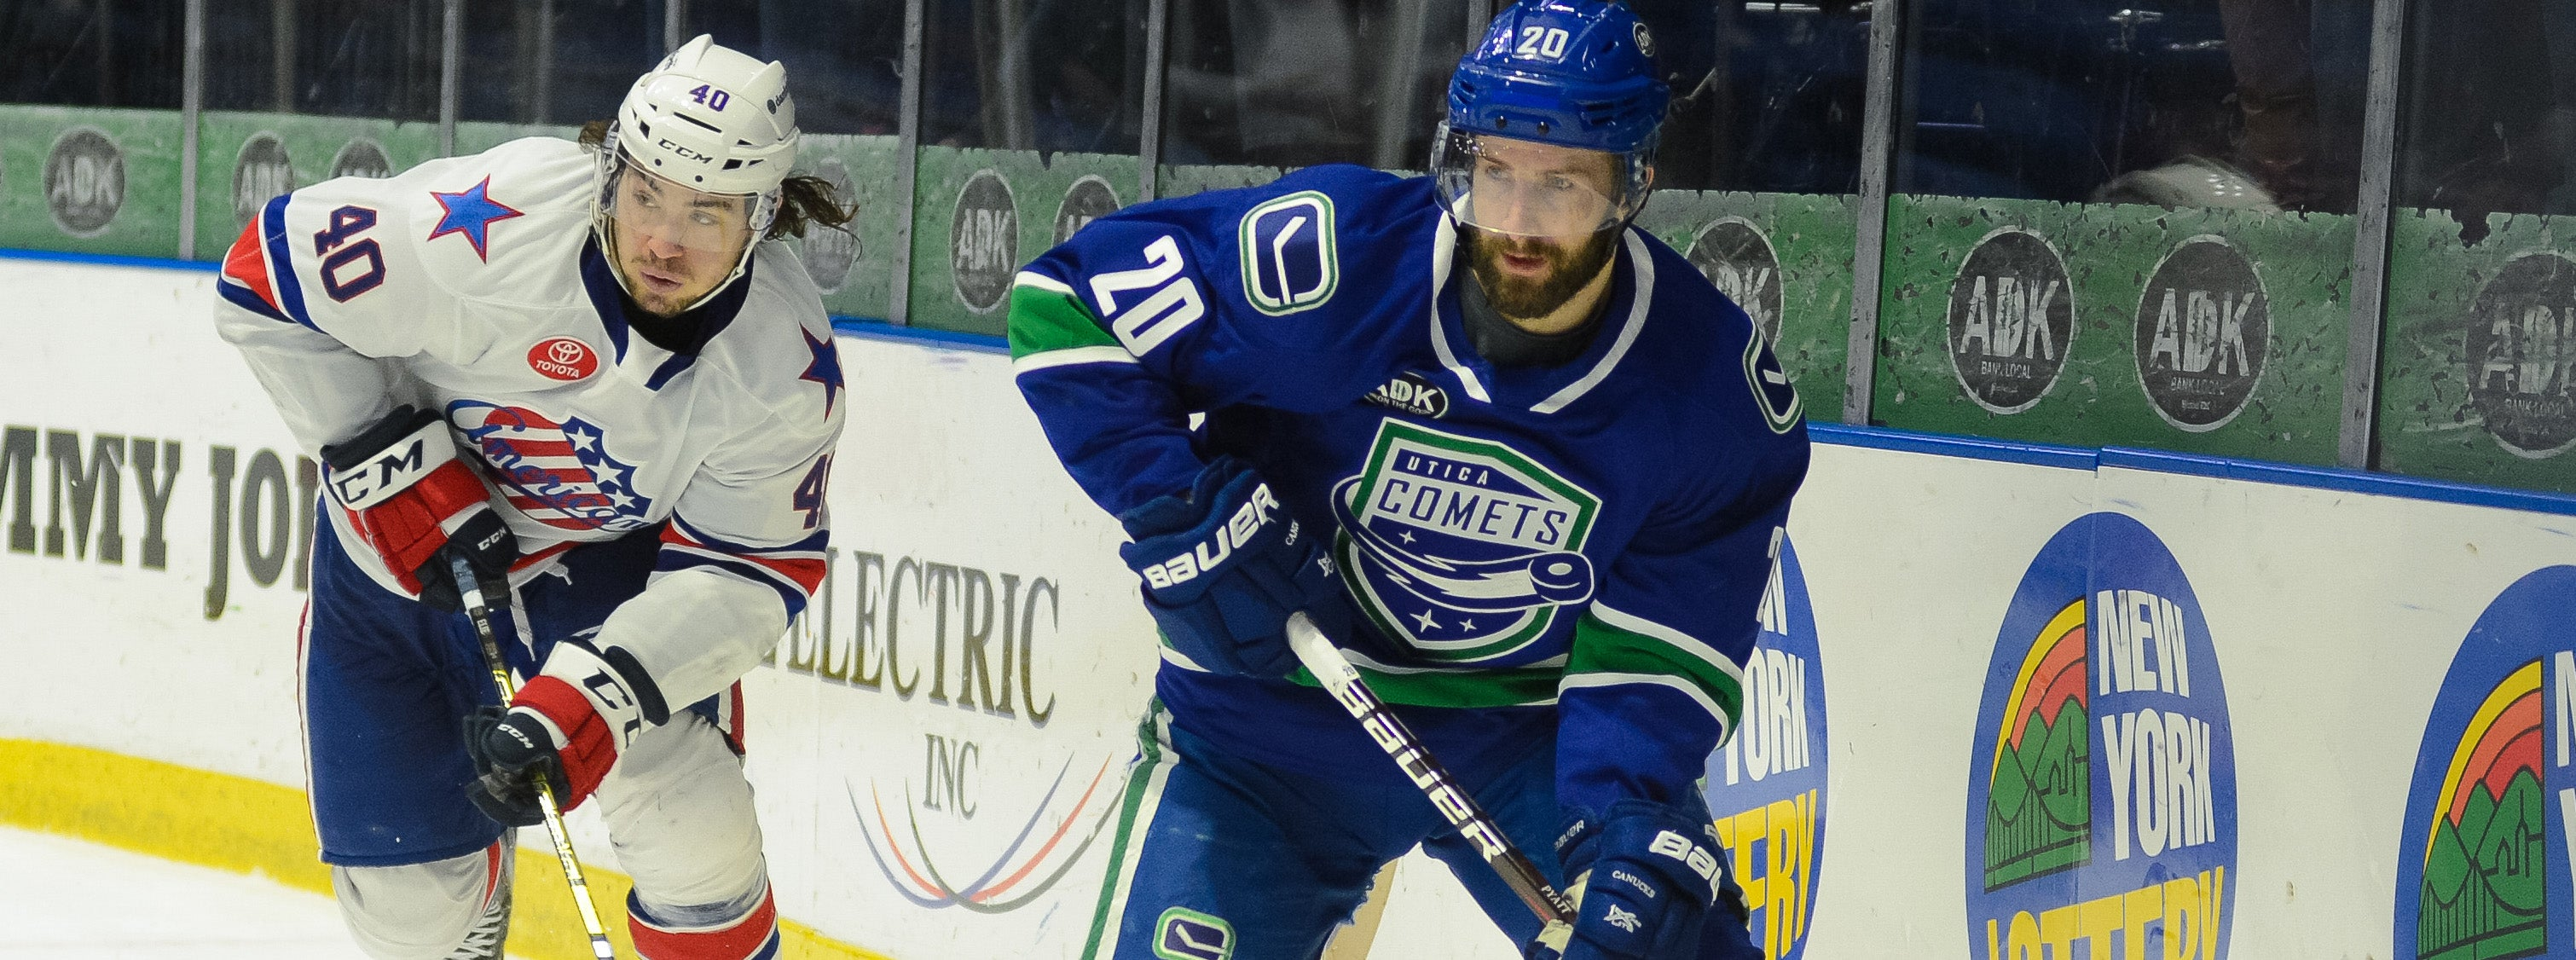 COMETS FACE AMERKS FOR FINAL TIME AT HOME